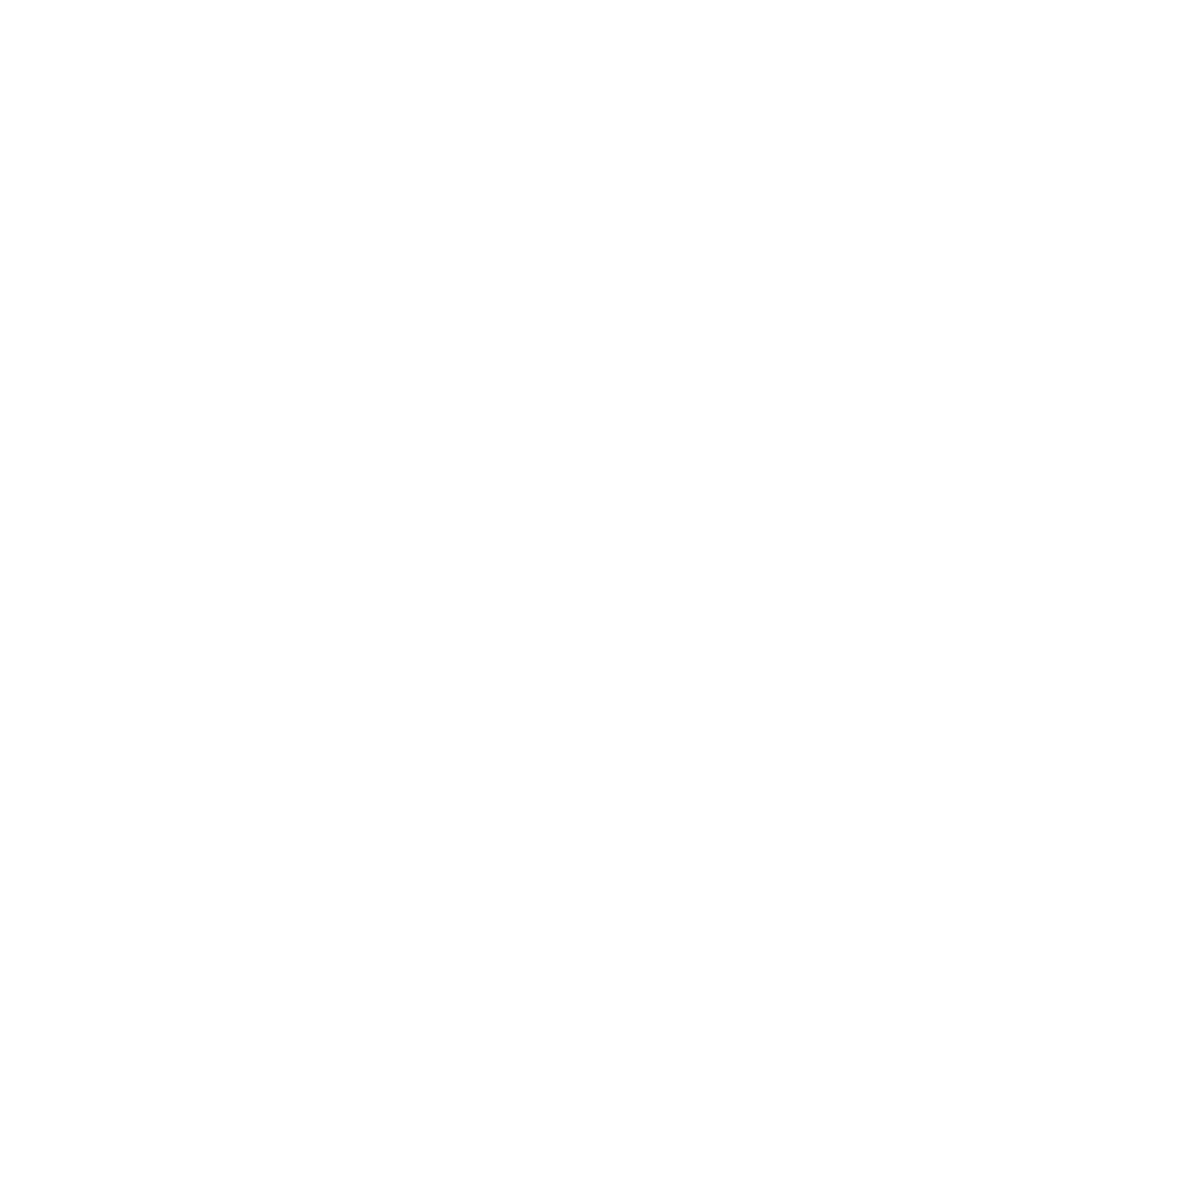 Drizzle Apparel Co. | A social enterprise and eco-friendly, sustainable clothing company